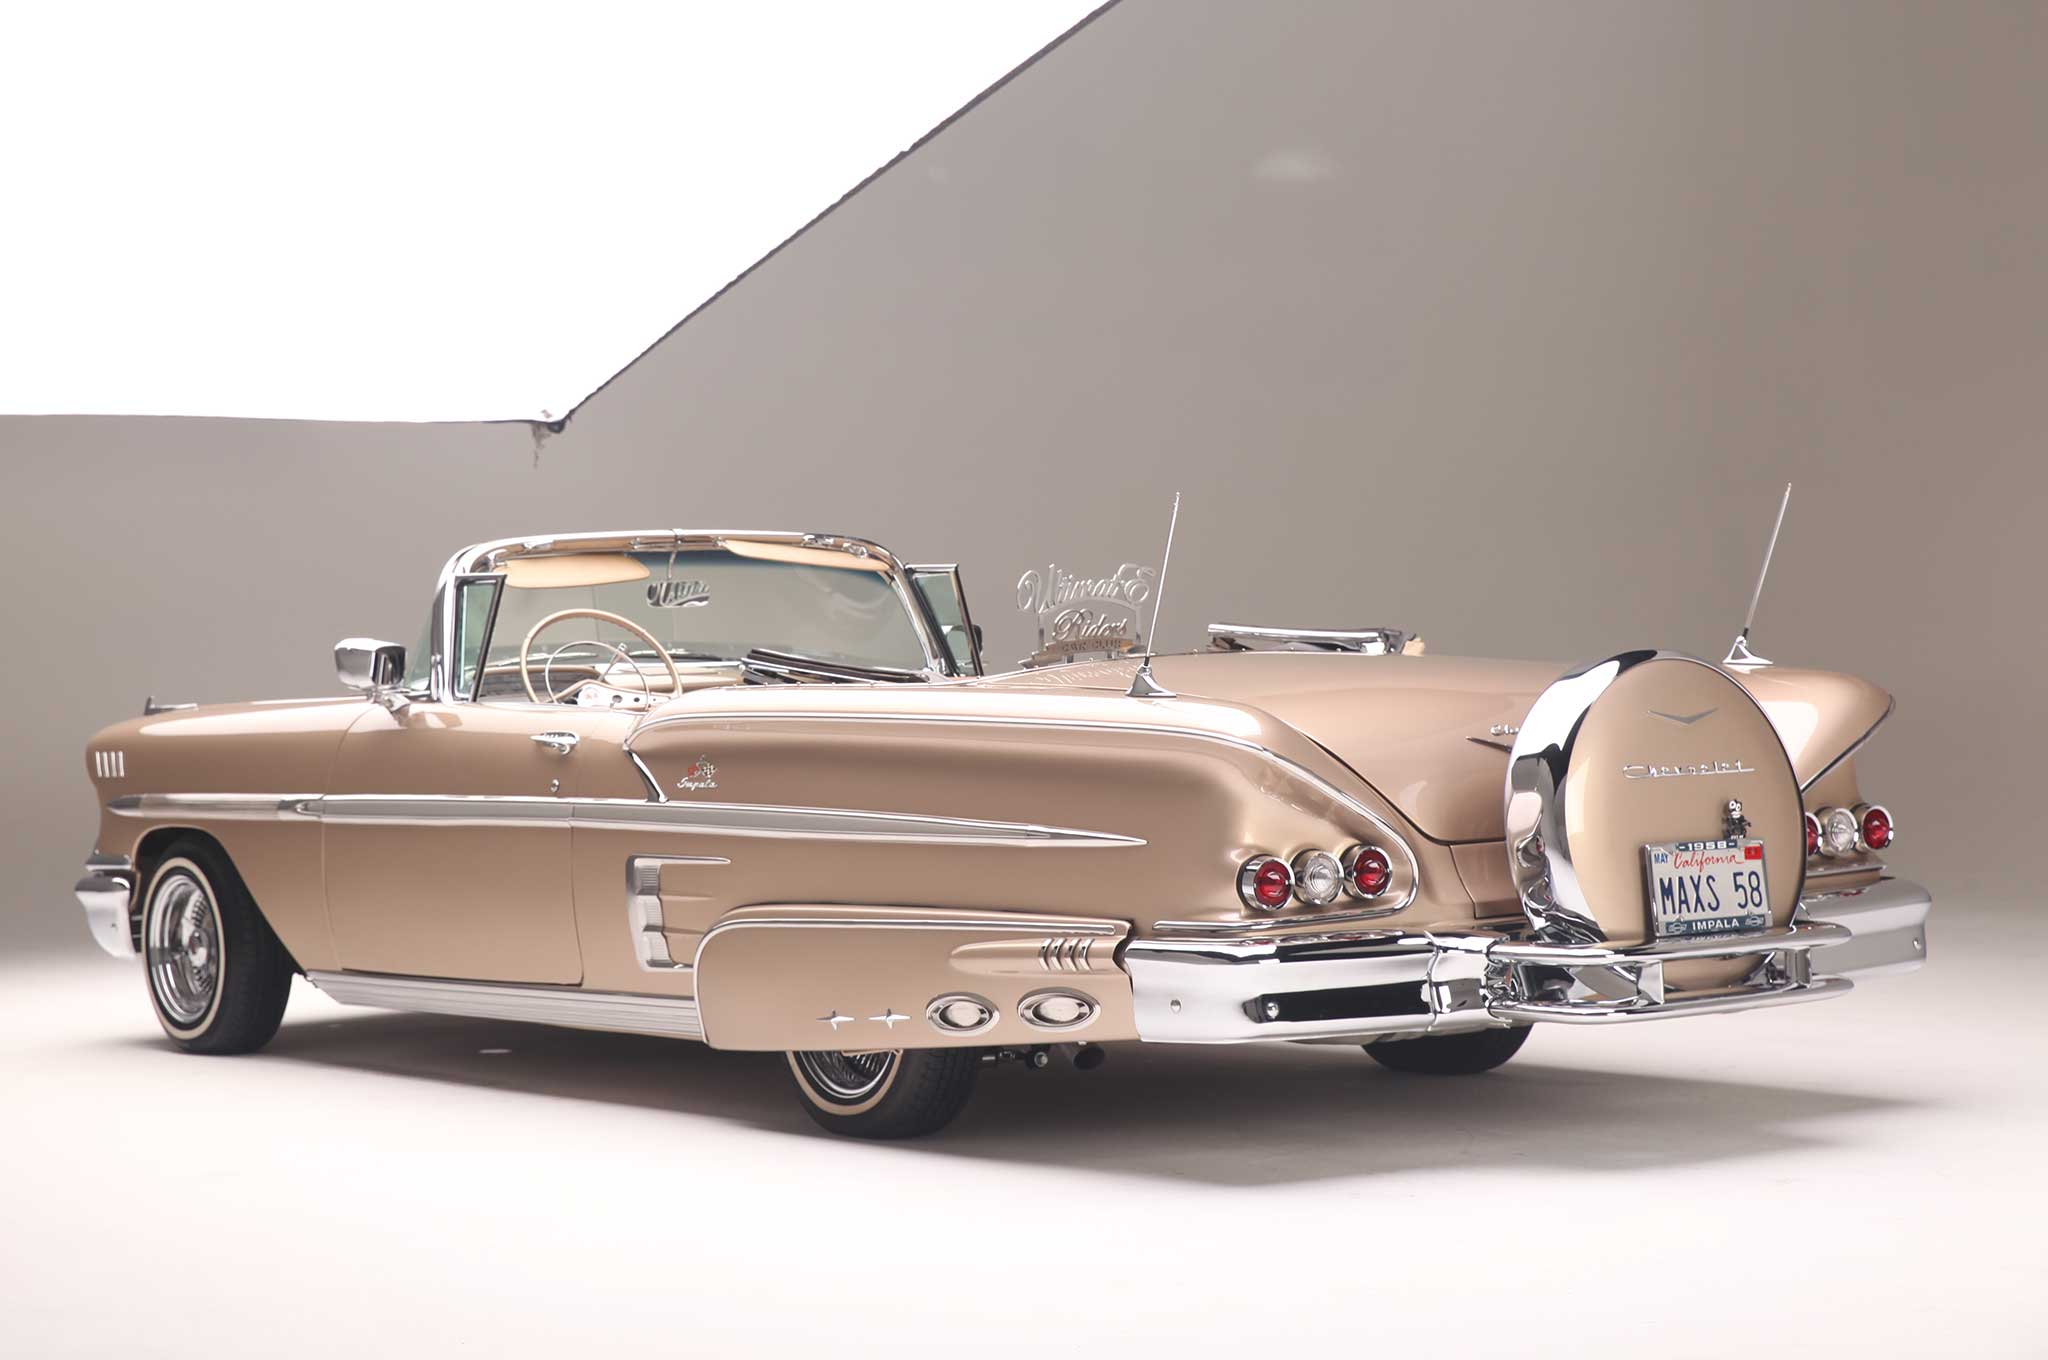 Classic Car Wallpaper 57 Chevy A 556hp Supercharged 1958 Chevrolet Impala